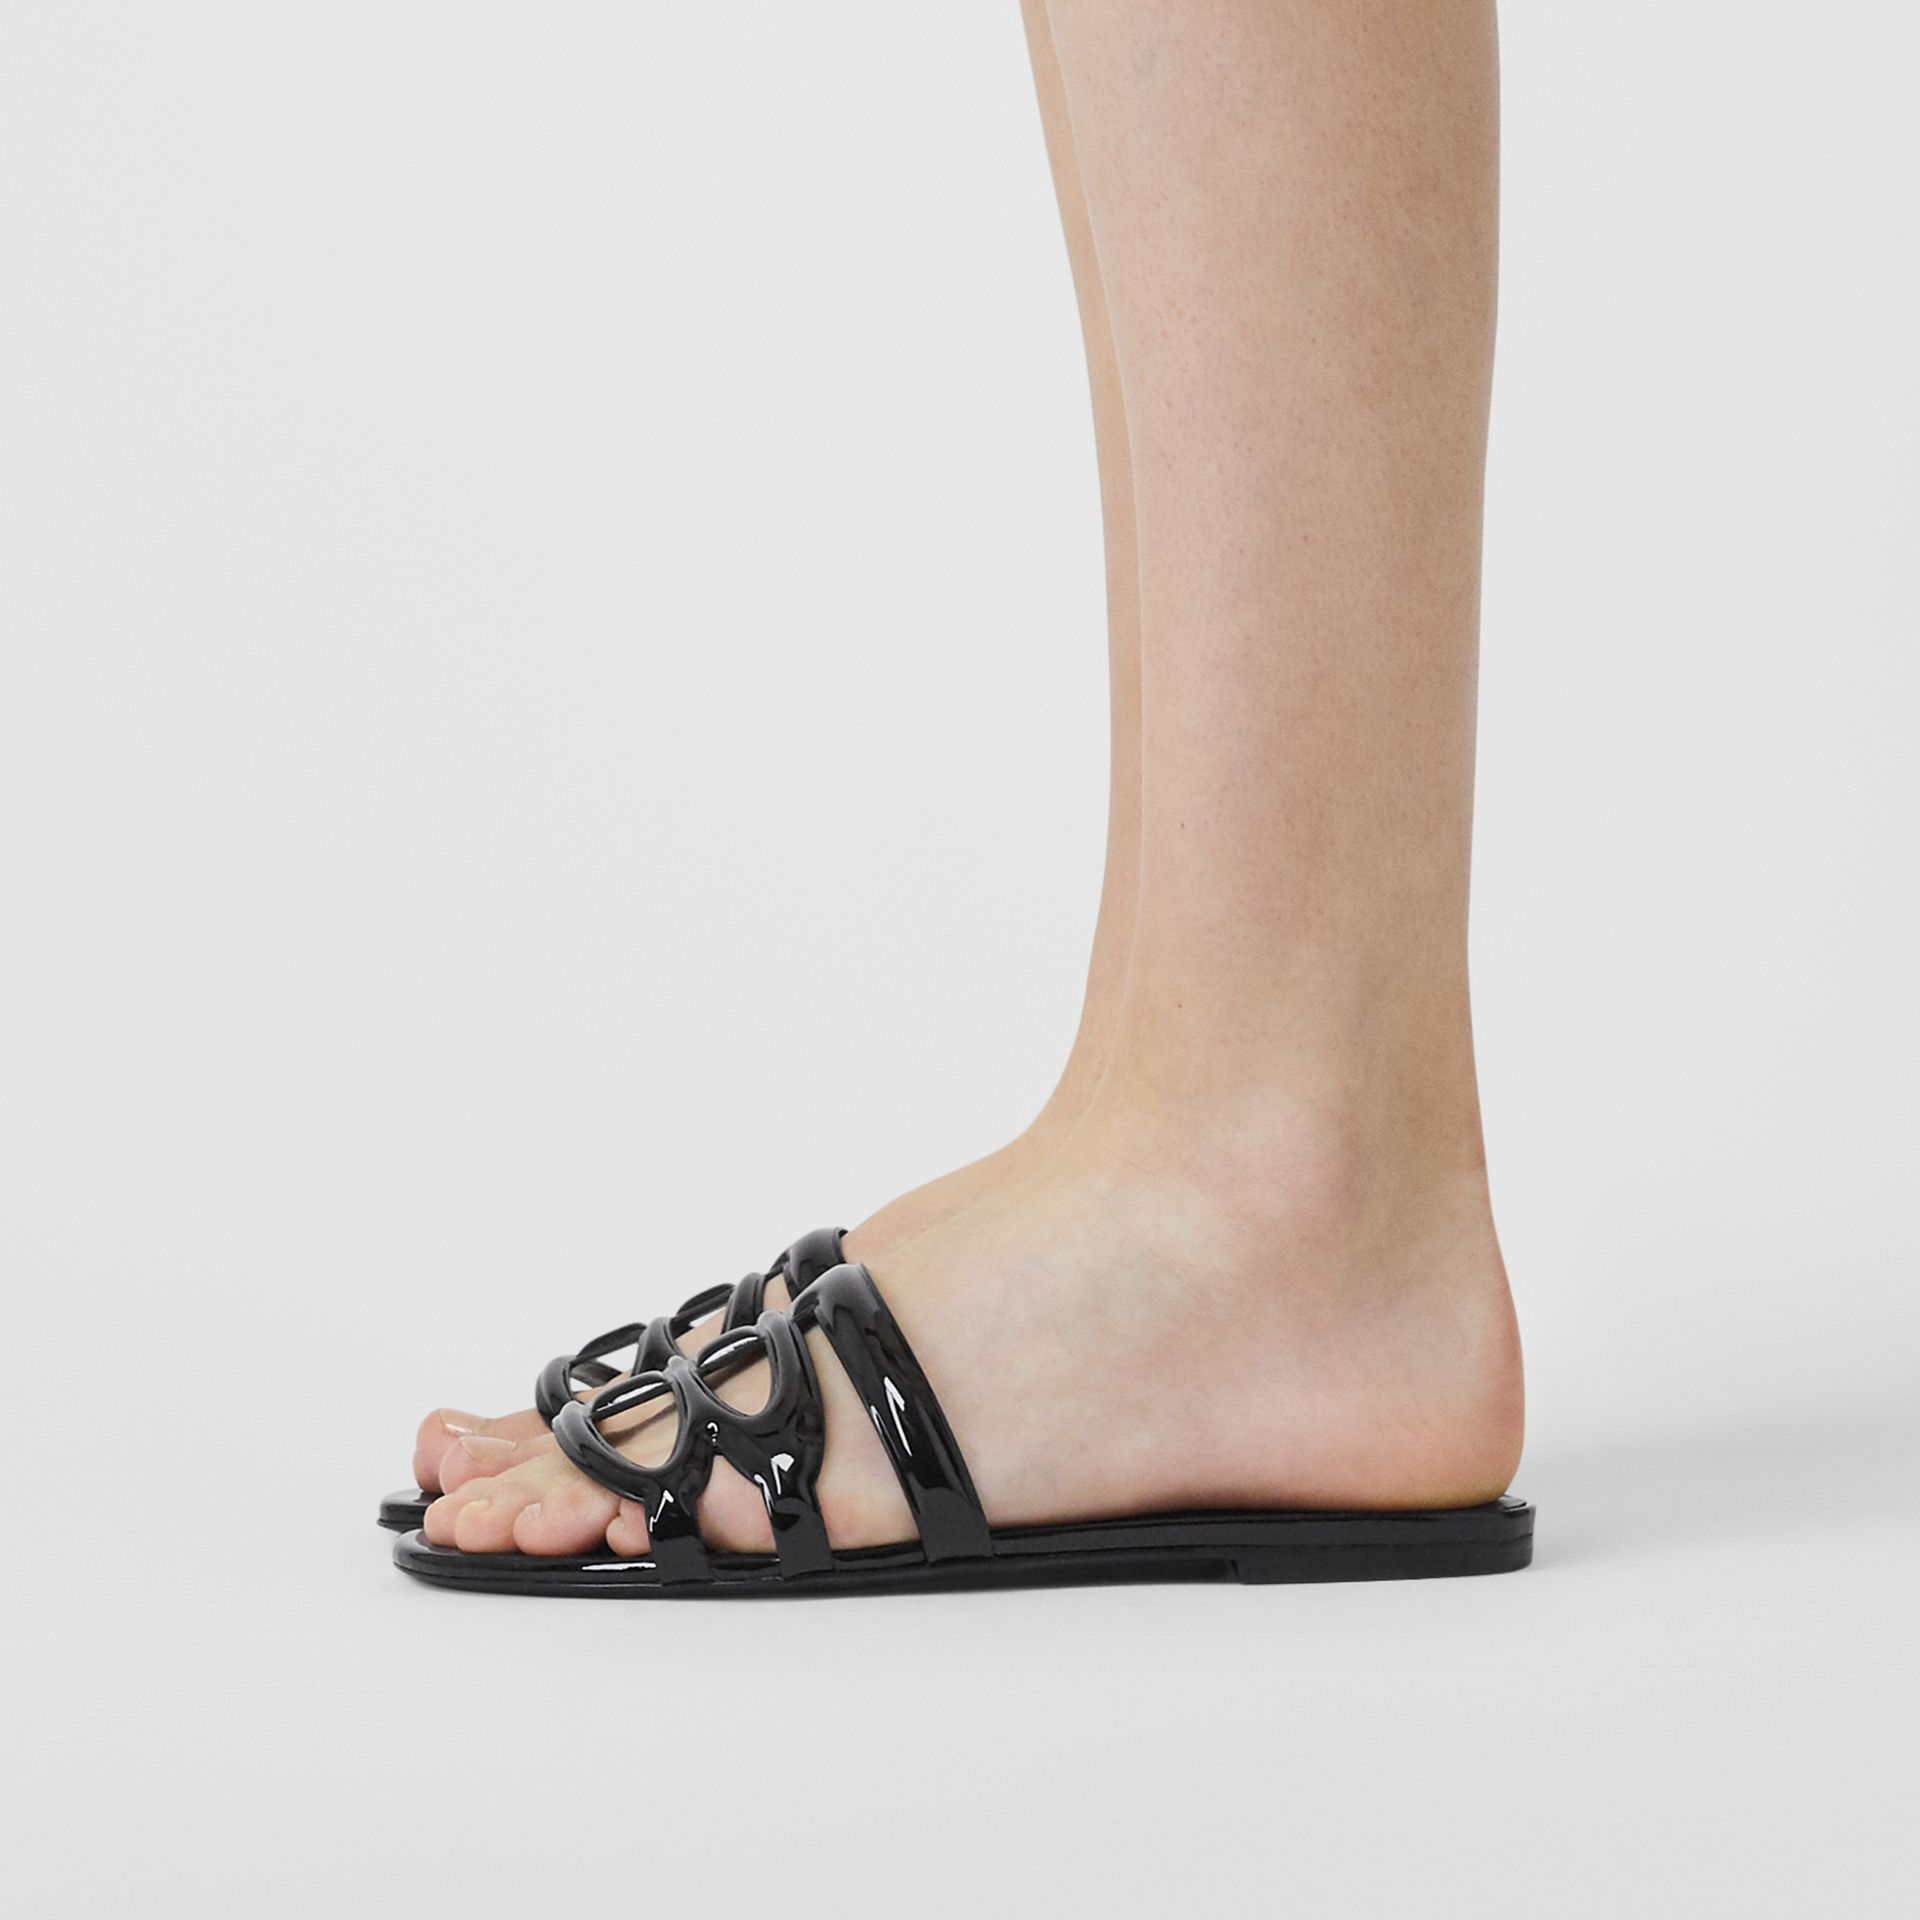 Monogram Motif Patent Leather Sandals in Black - Women | Burberry - gallery image 2